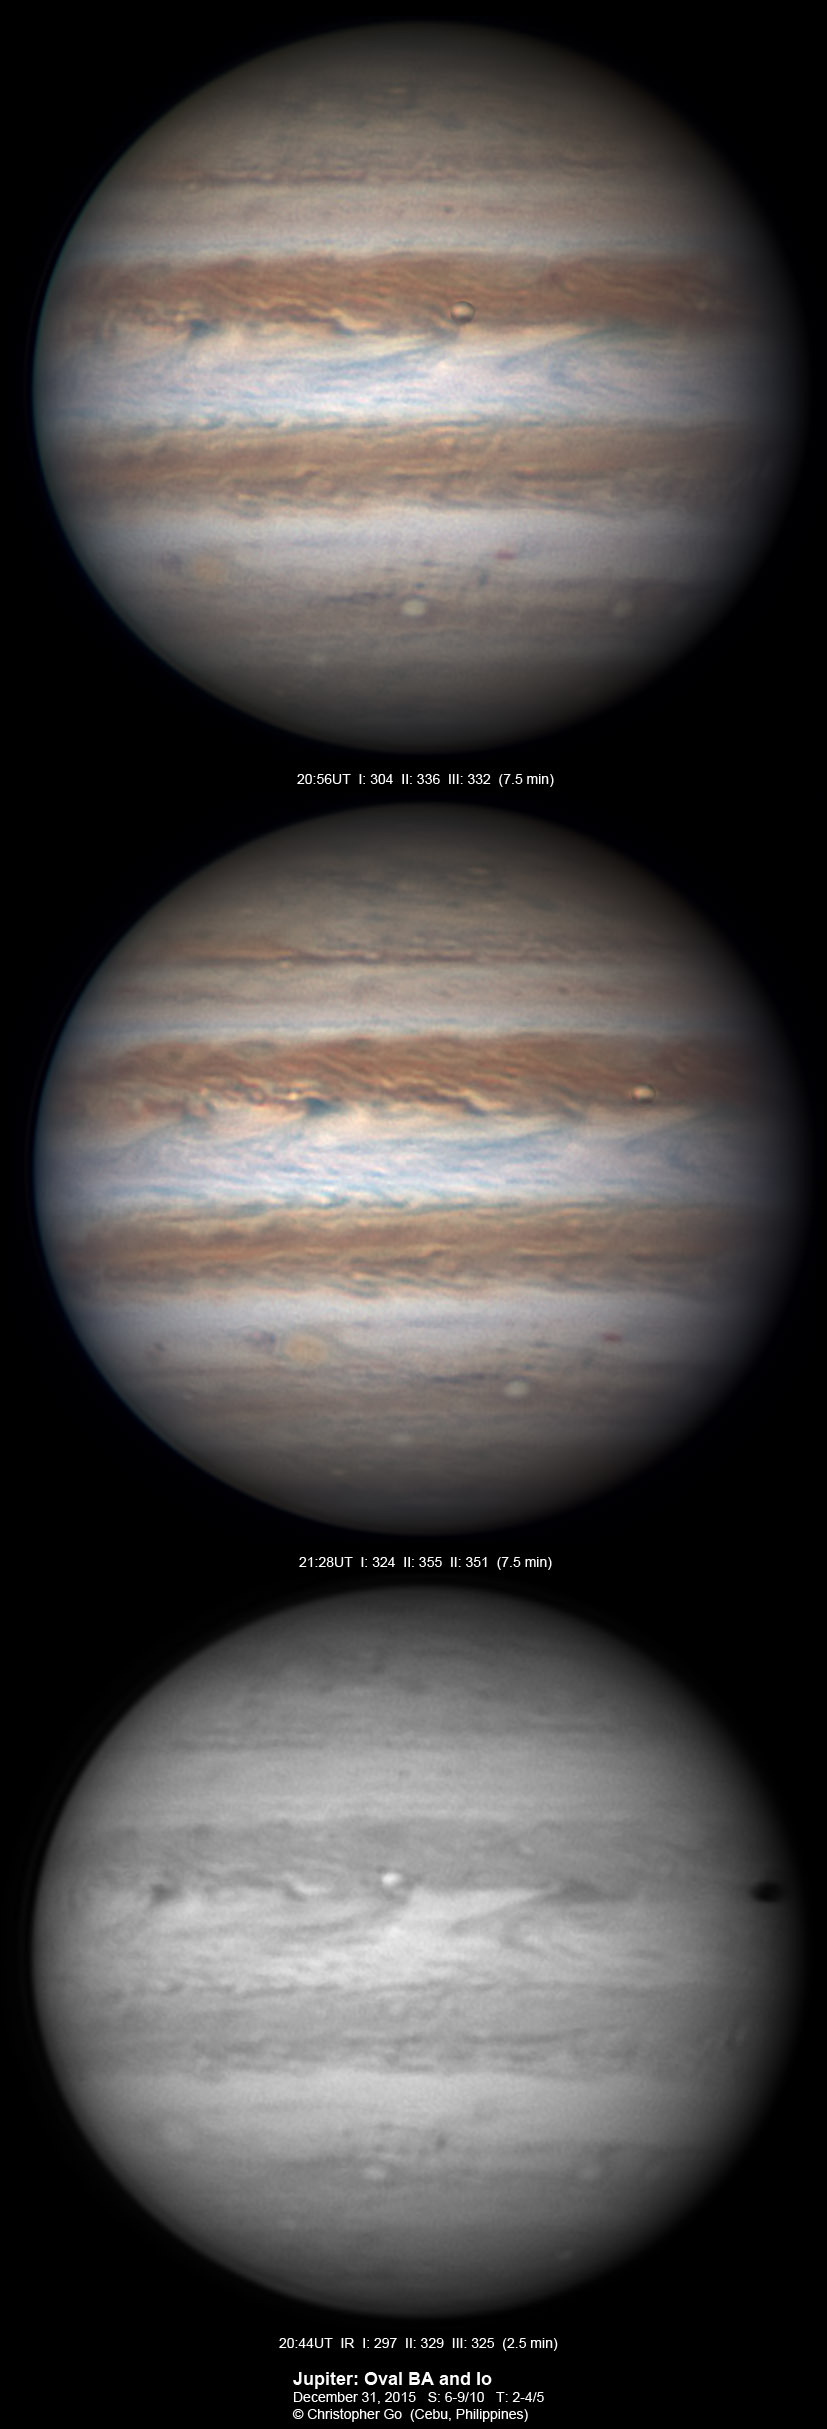 Io transits Jupiter